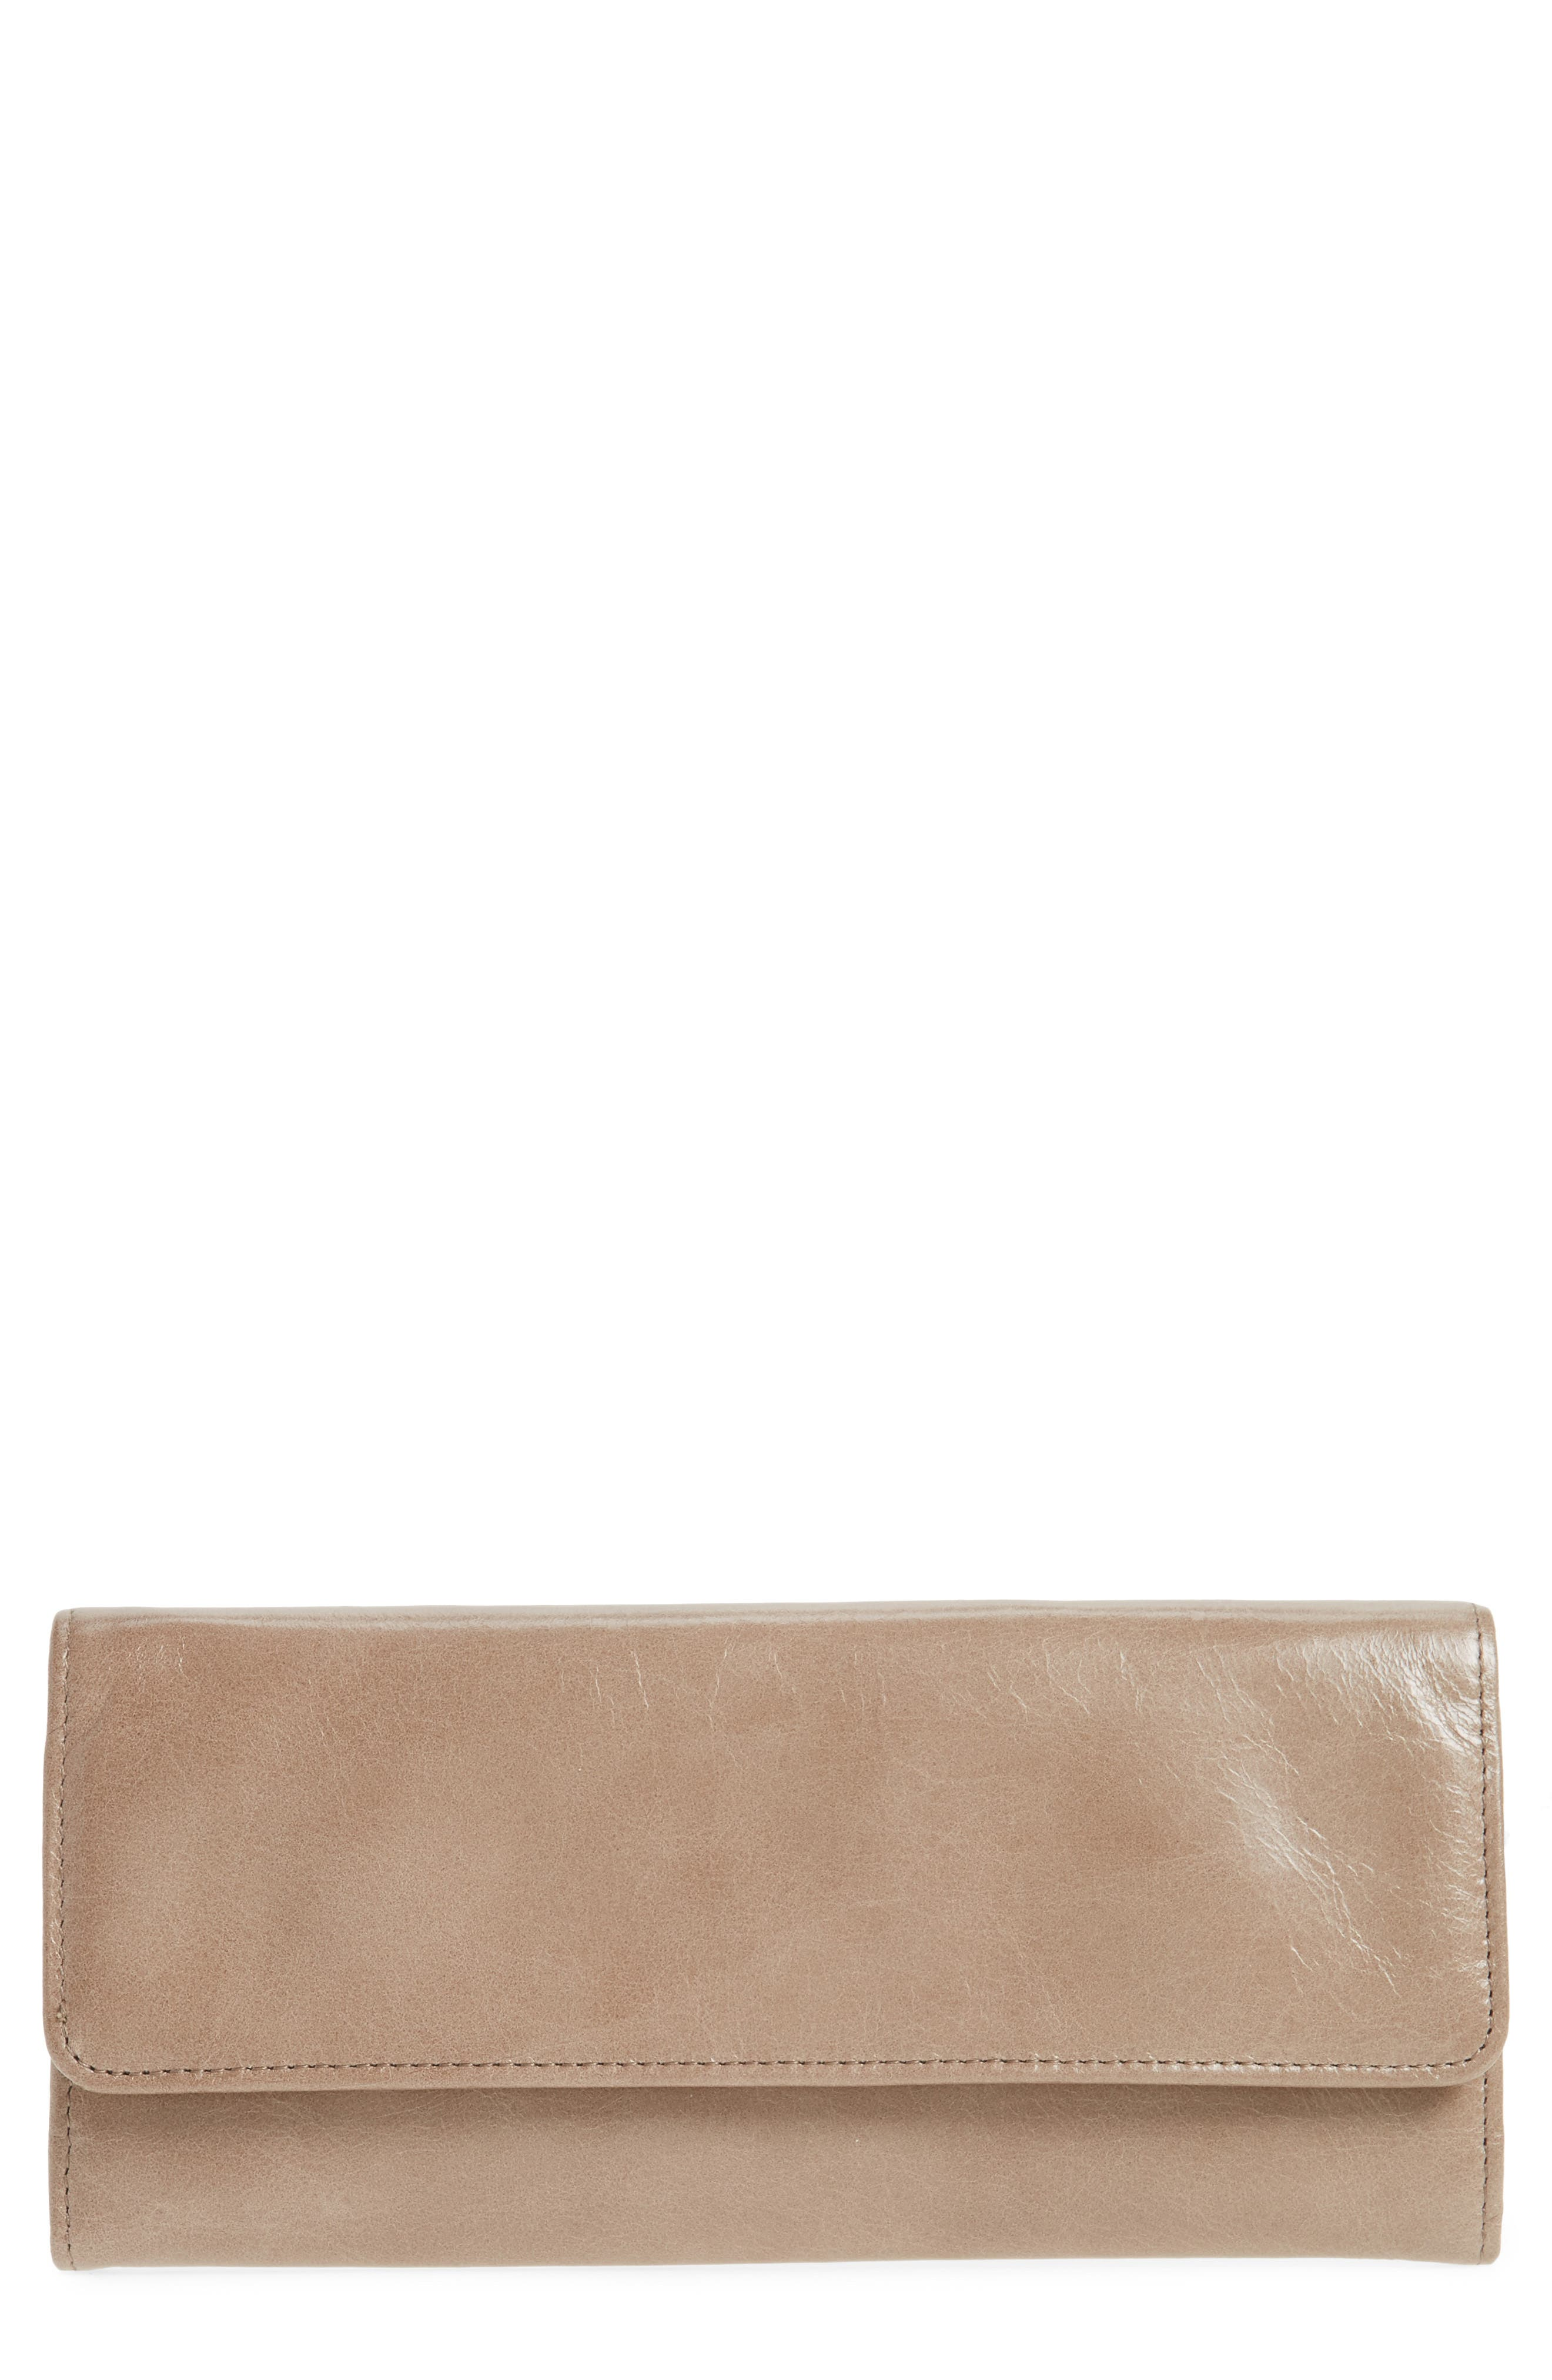 Hobo 'Sadie' Leather Wallet